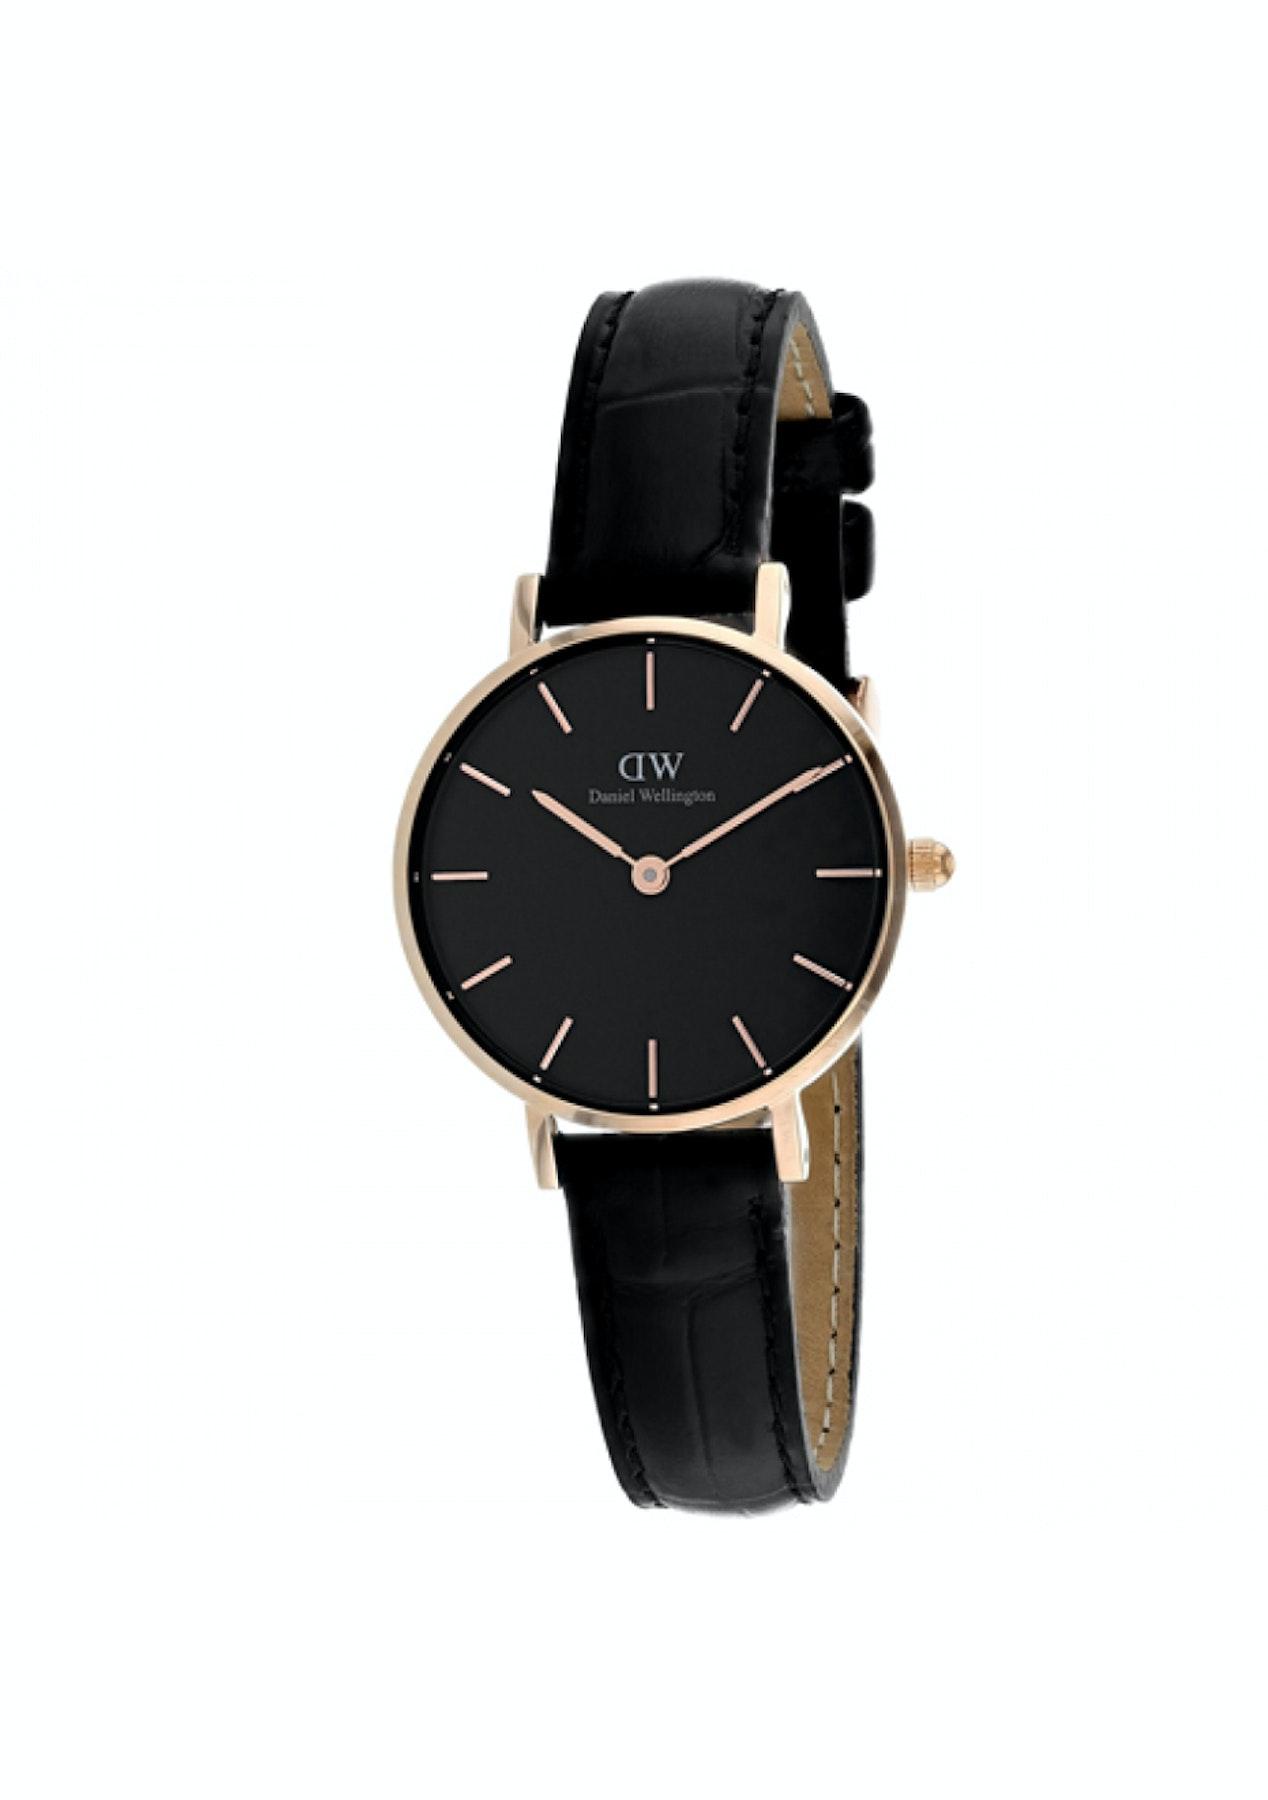 95f14af61faa Daniel Wellington Classic Petite Reading 28mm - Black Black - Foxleigh  Watches + More - Onceit